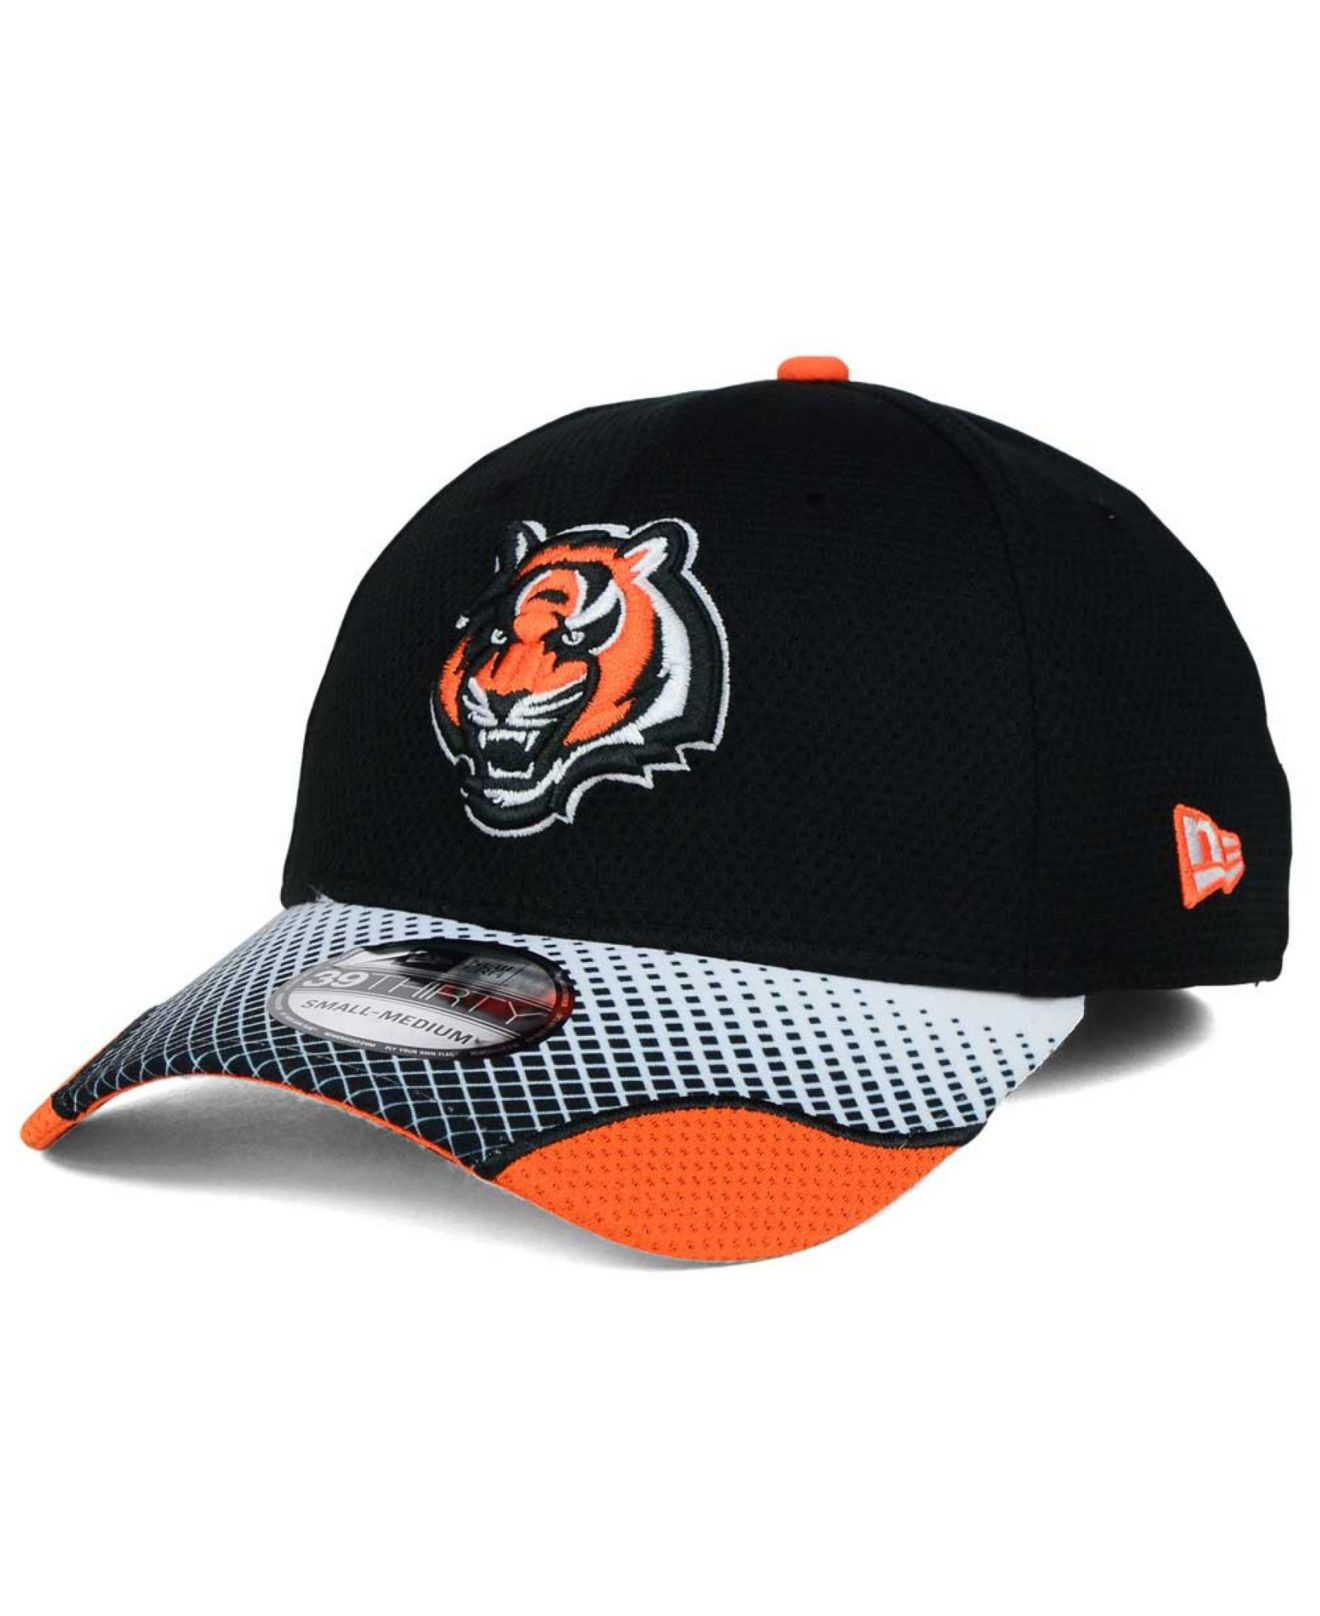 sale retailer 23555 c5d98 Lyst - KTZ Cincinnati Bengals Screen Vize 39thirty Cap in Black for Men